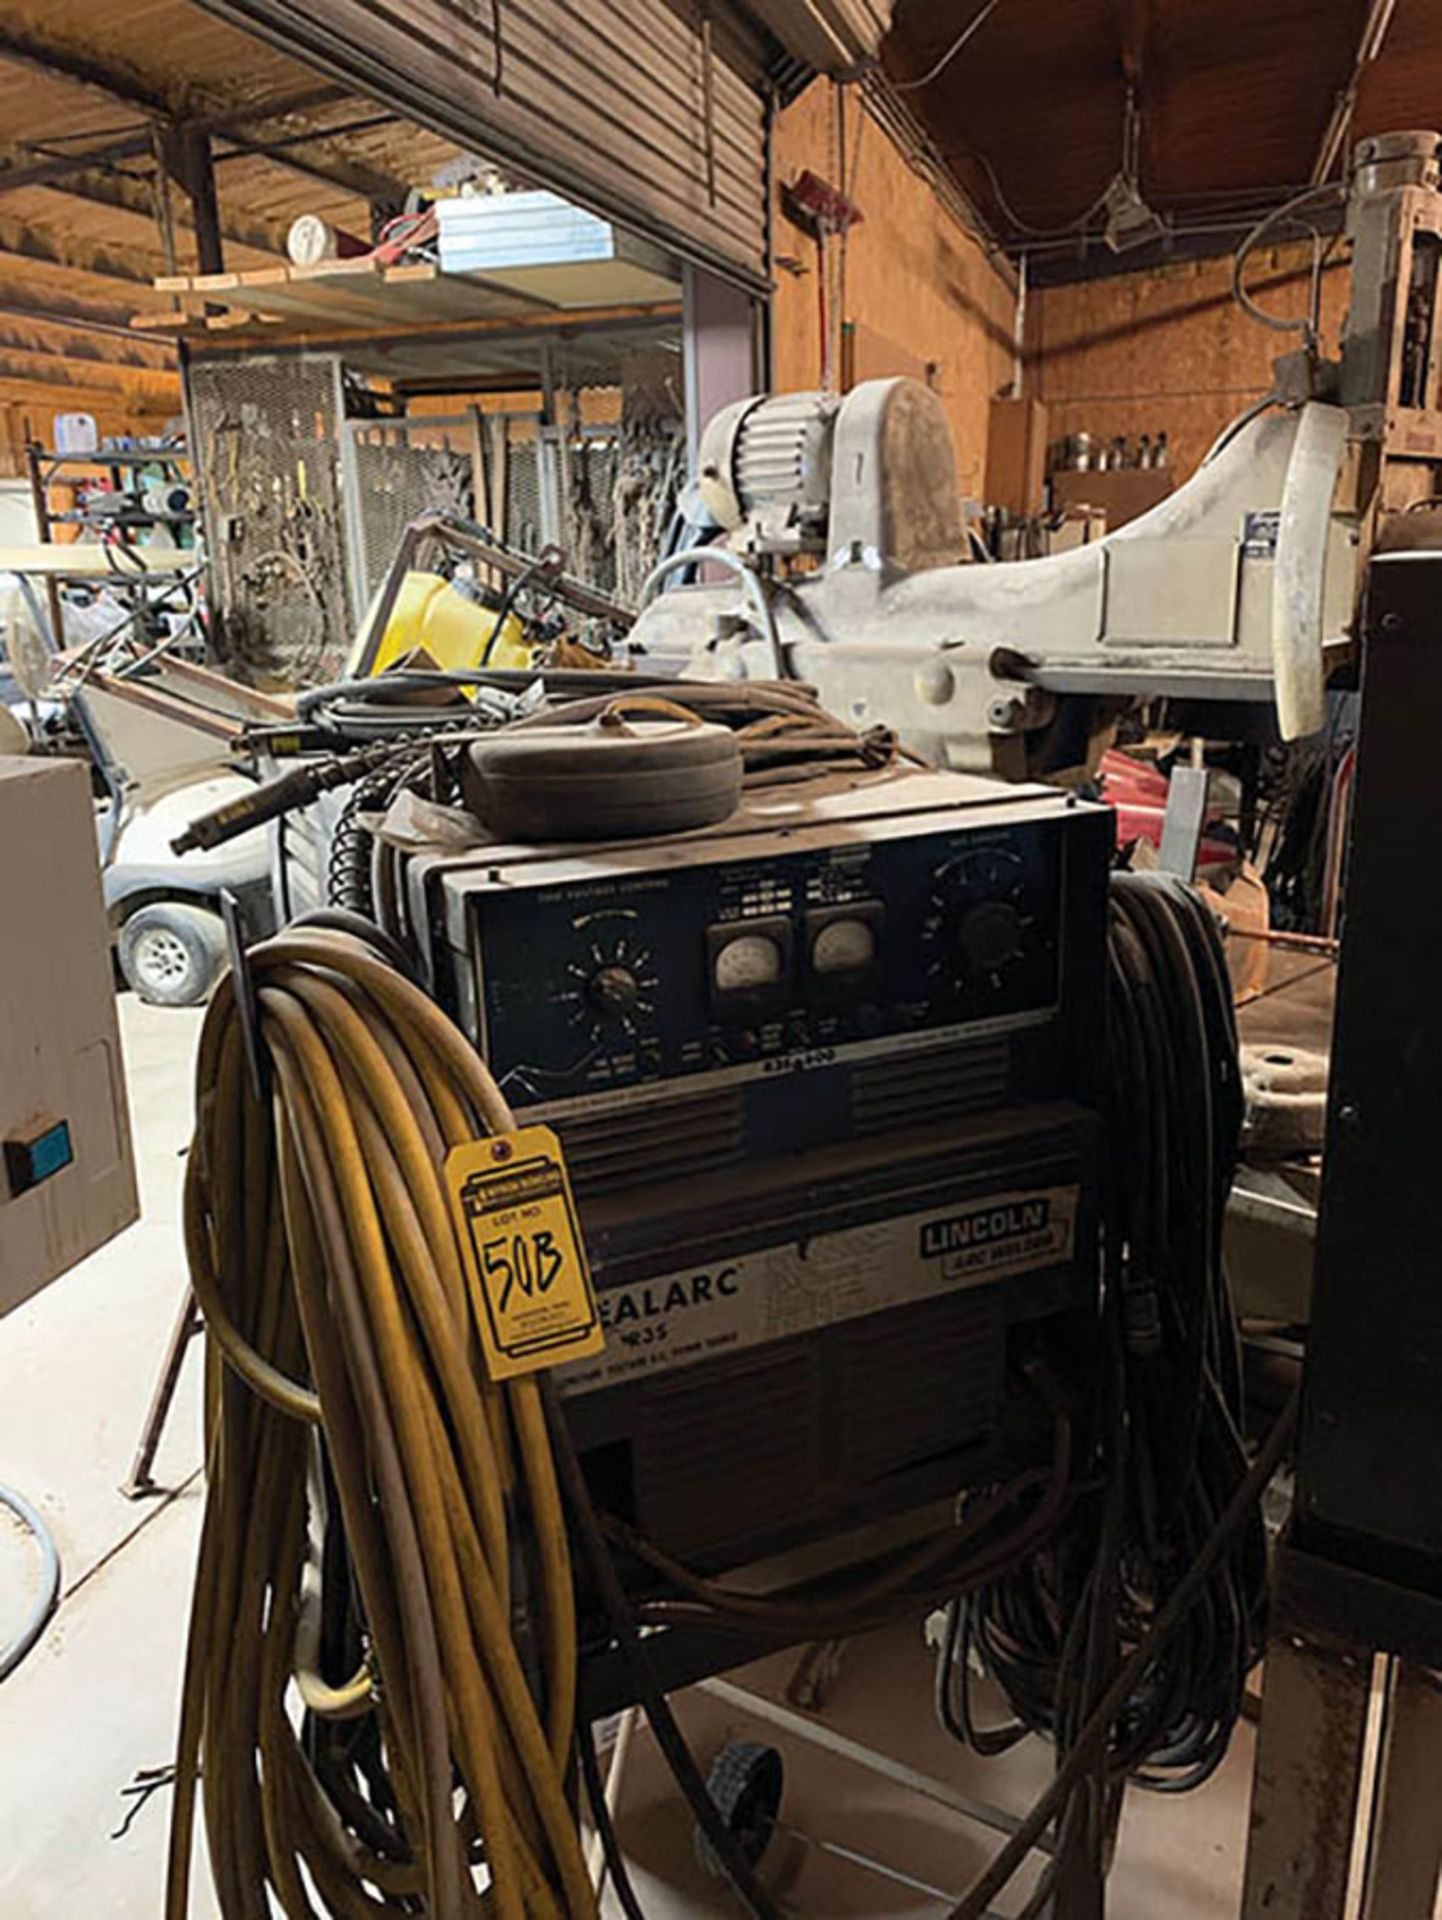 LINCOLN R3S 600 WELDING POWER SOURCE, S/N AC295017